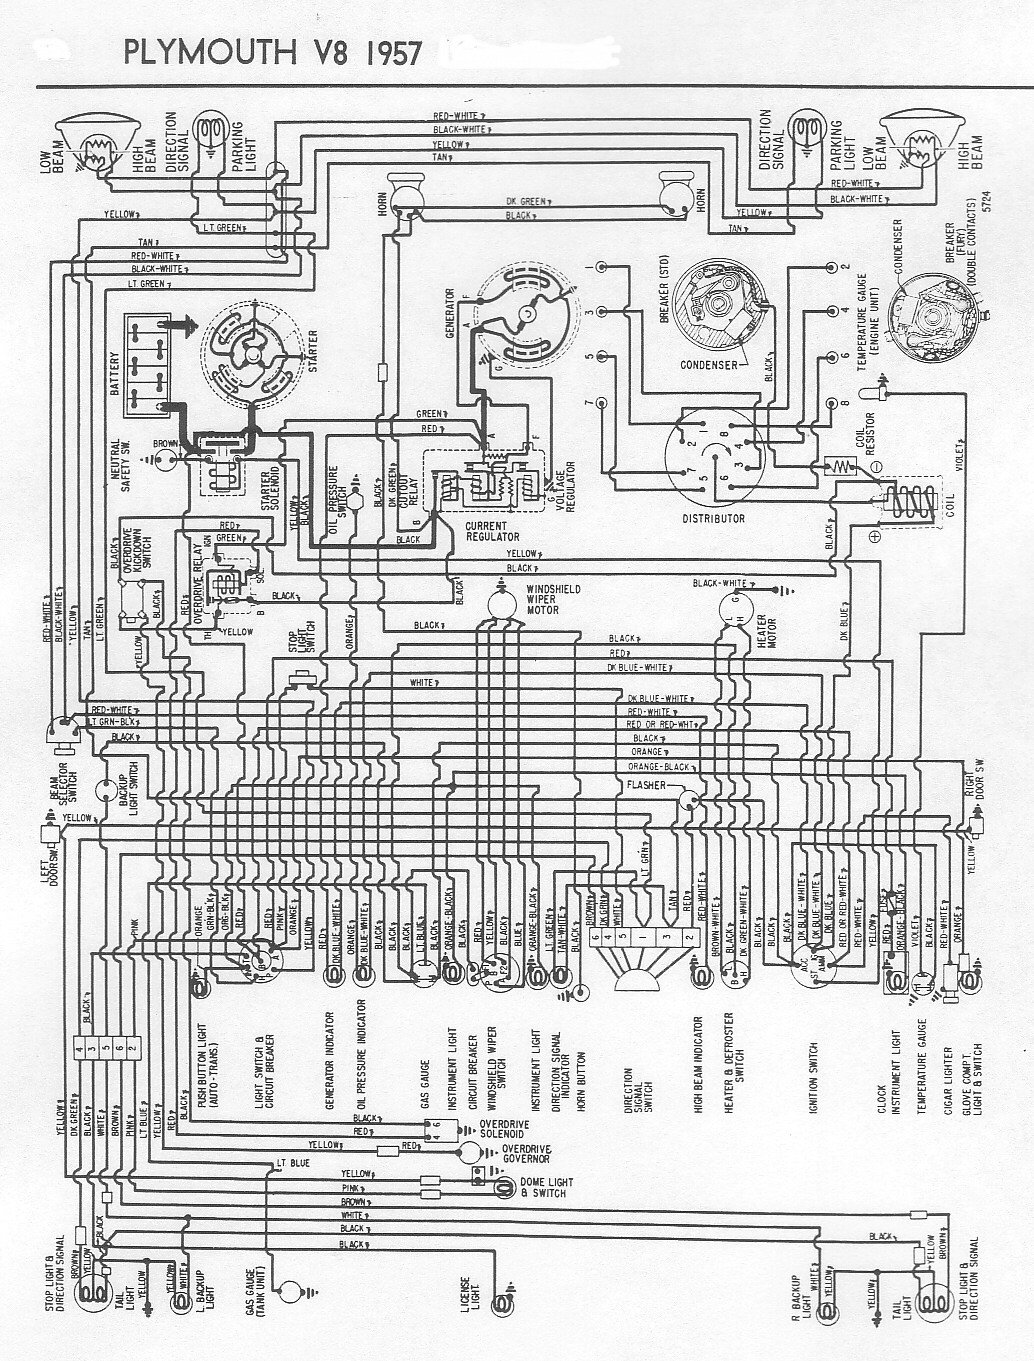 I Am Looking For The Engine Wiring Diagram For A 1957